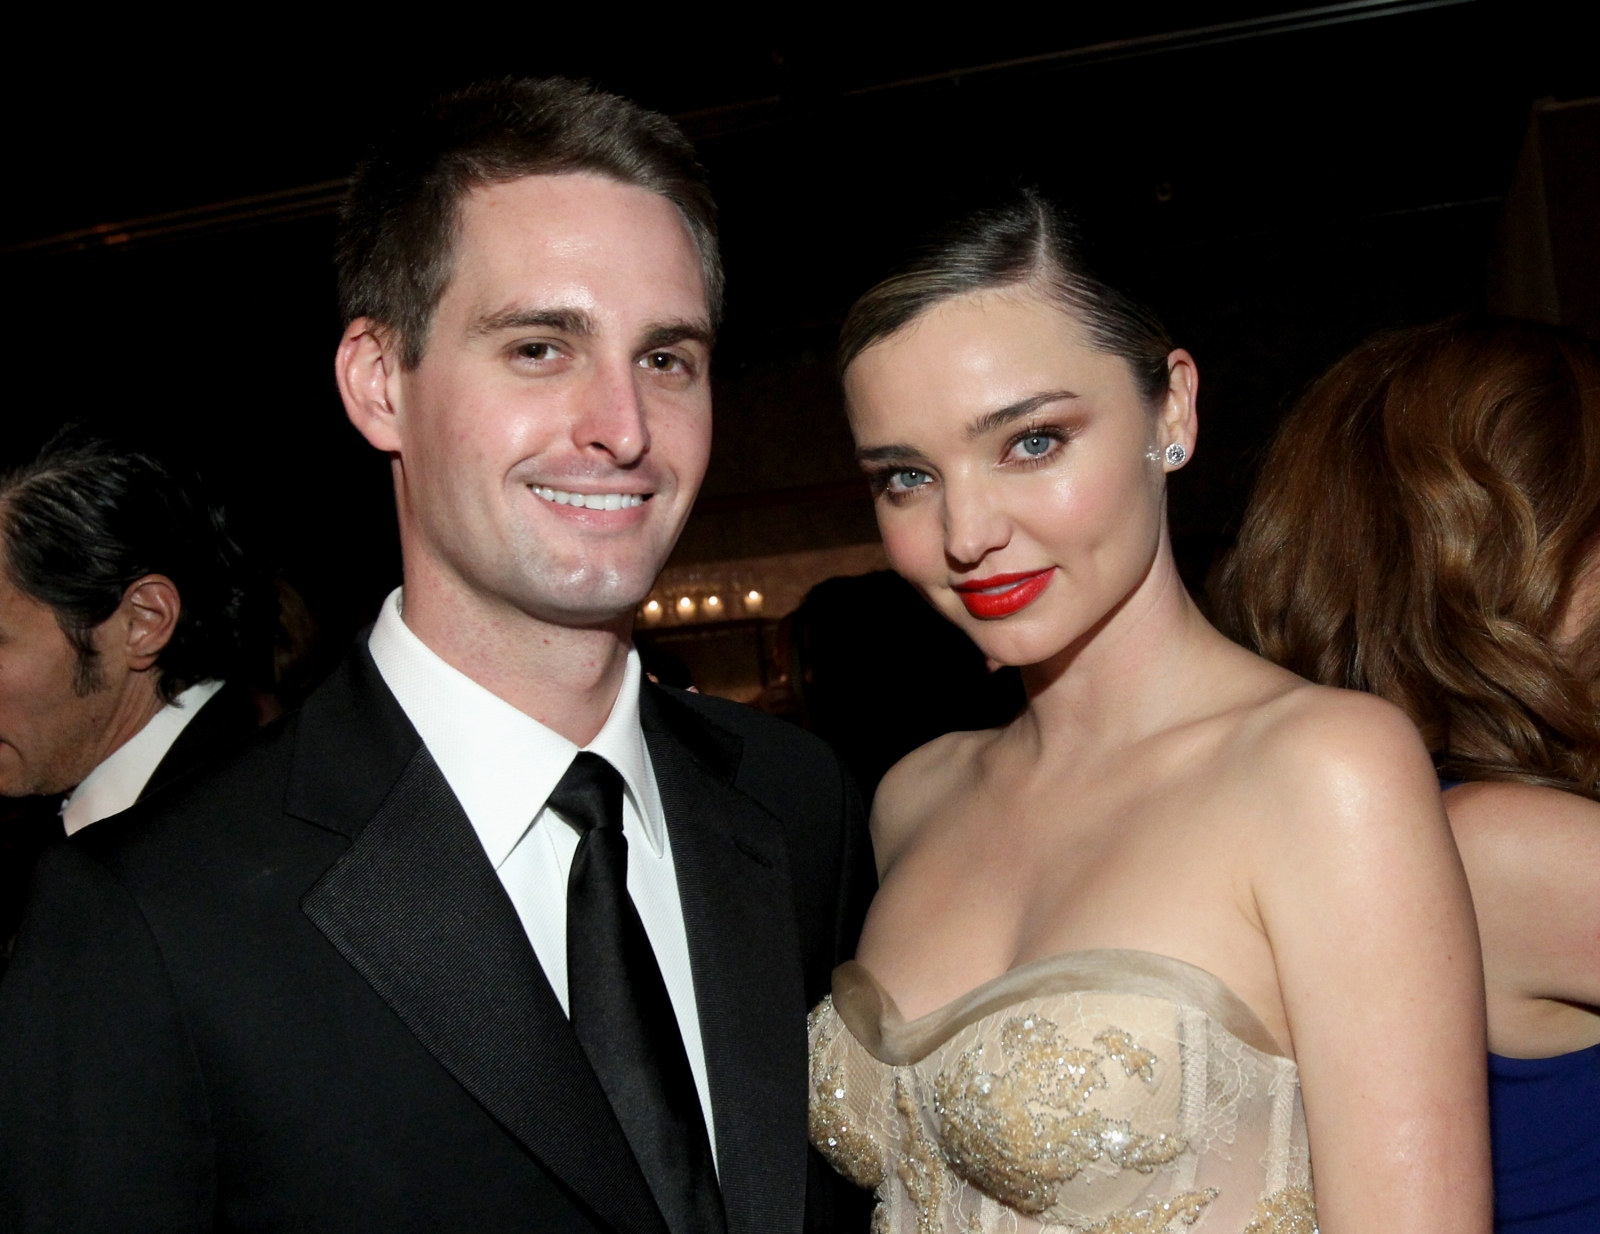 Miranda Kerr shares photos from her 'magical' wedding